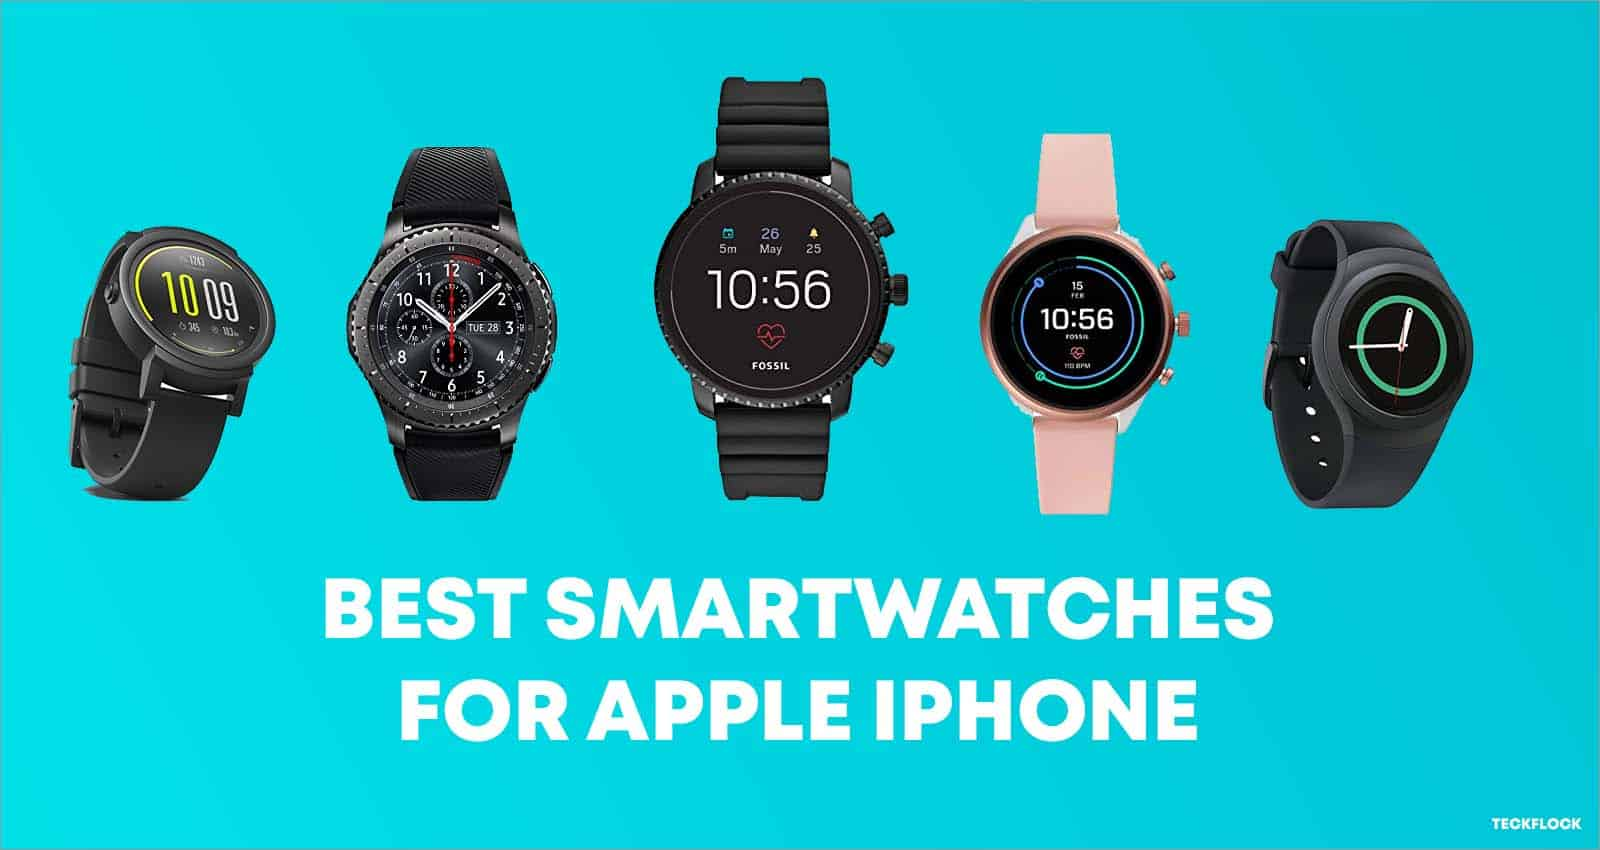 Smartwatches for iPhone